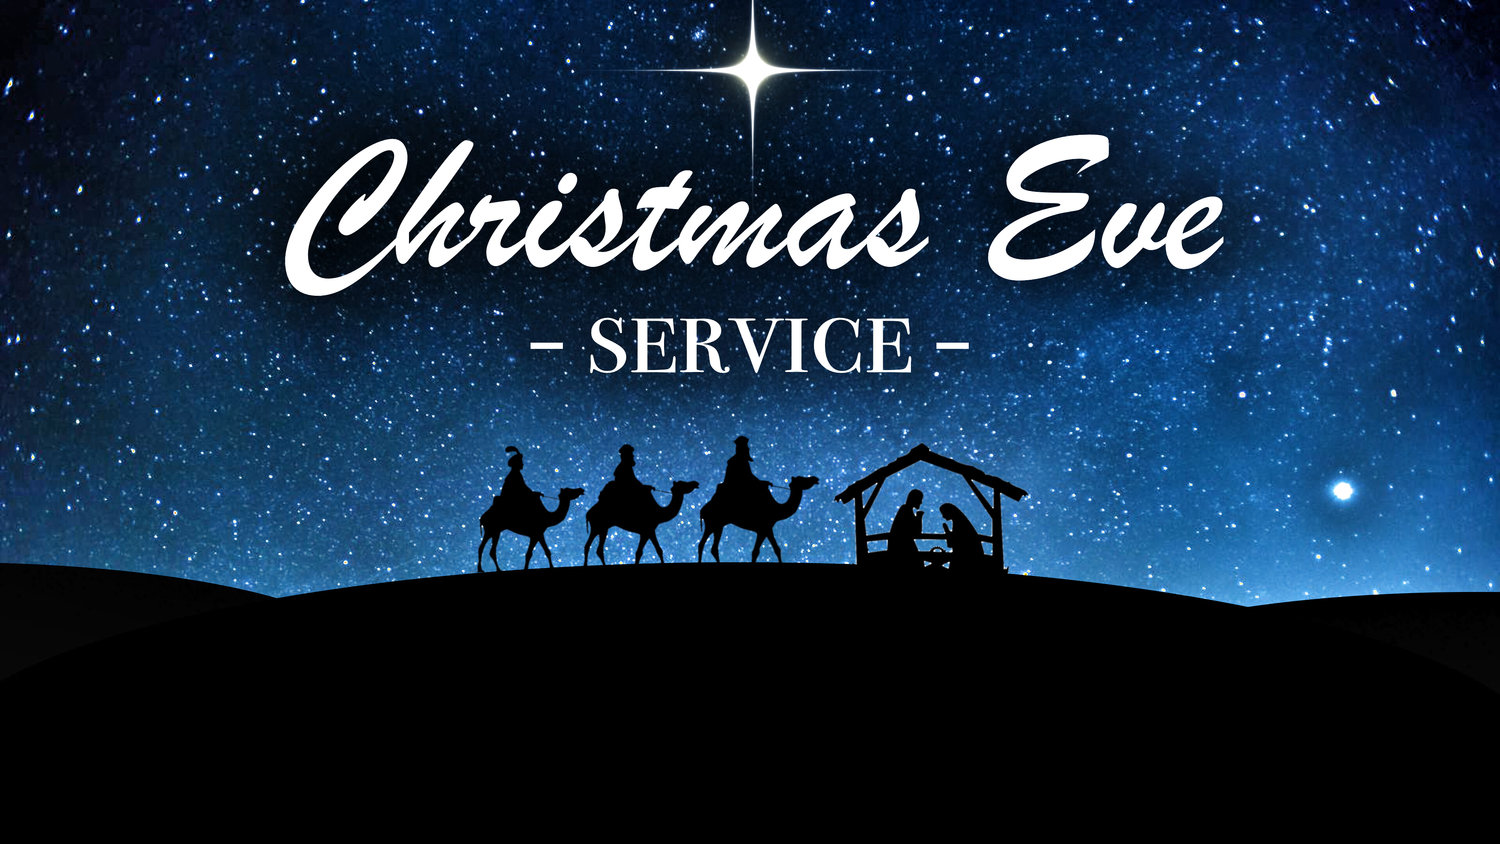 Christmas Eve Services.Christmas Eve Service New Fairview Church Of The Brethren